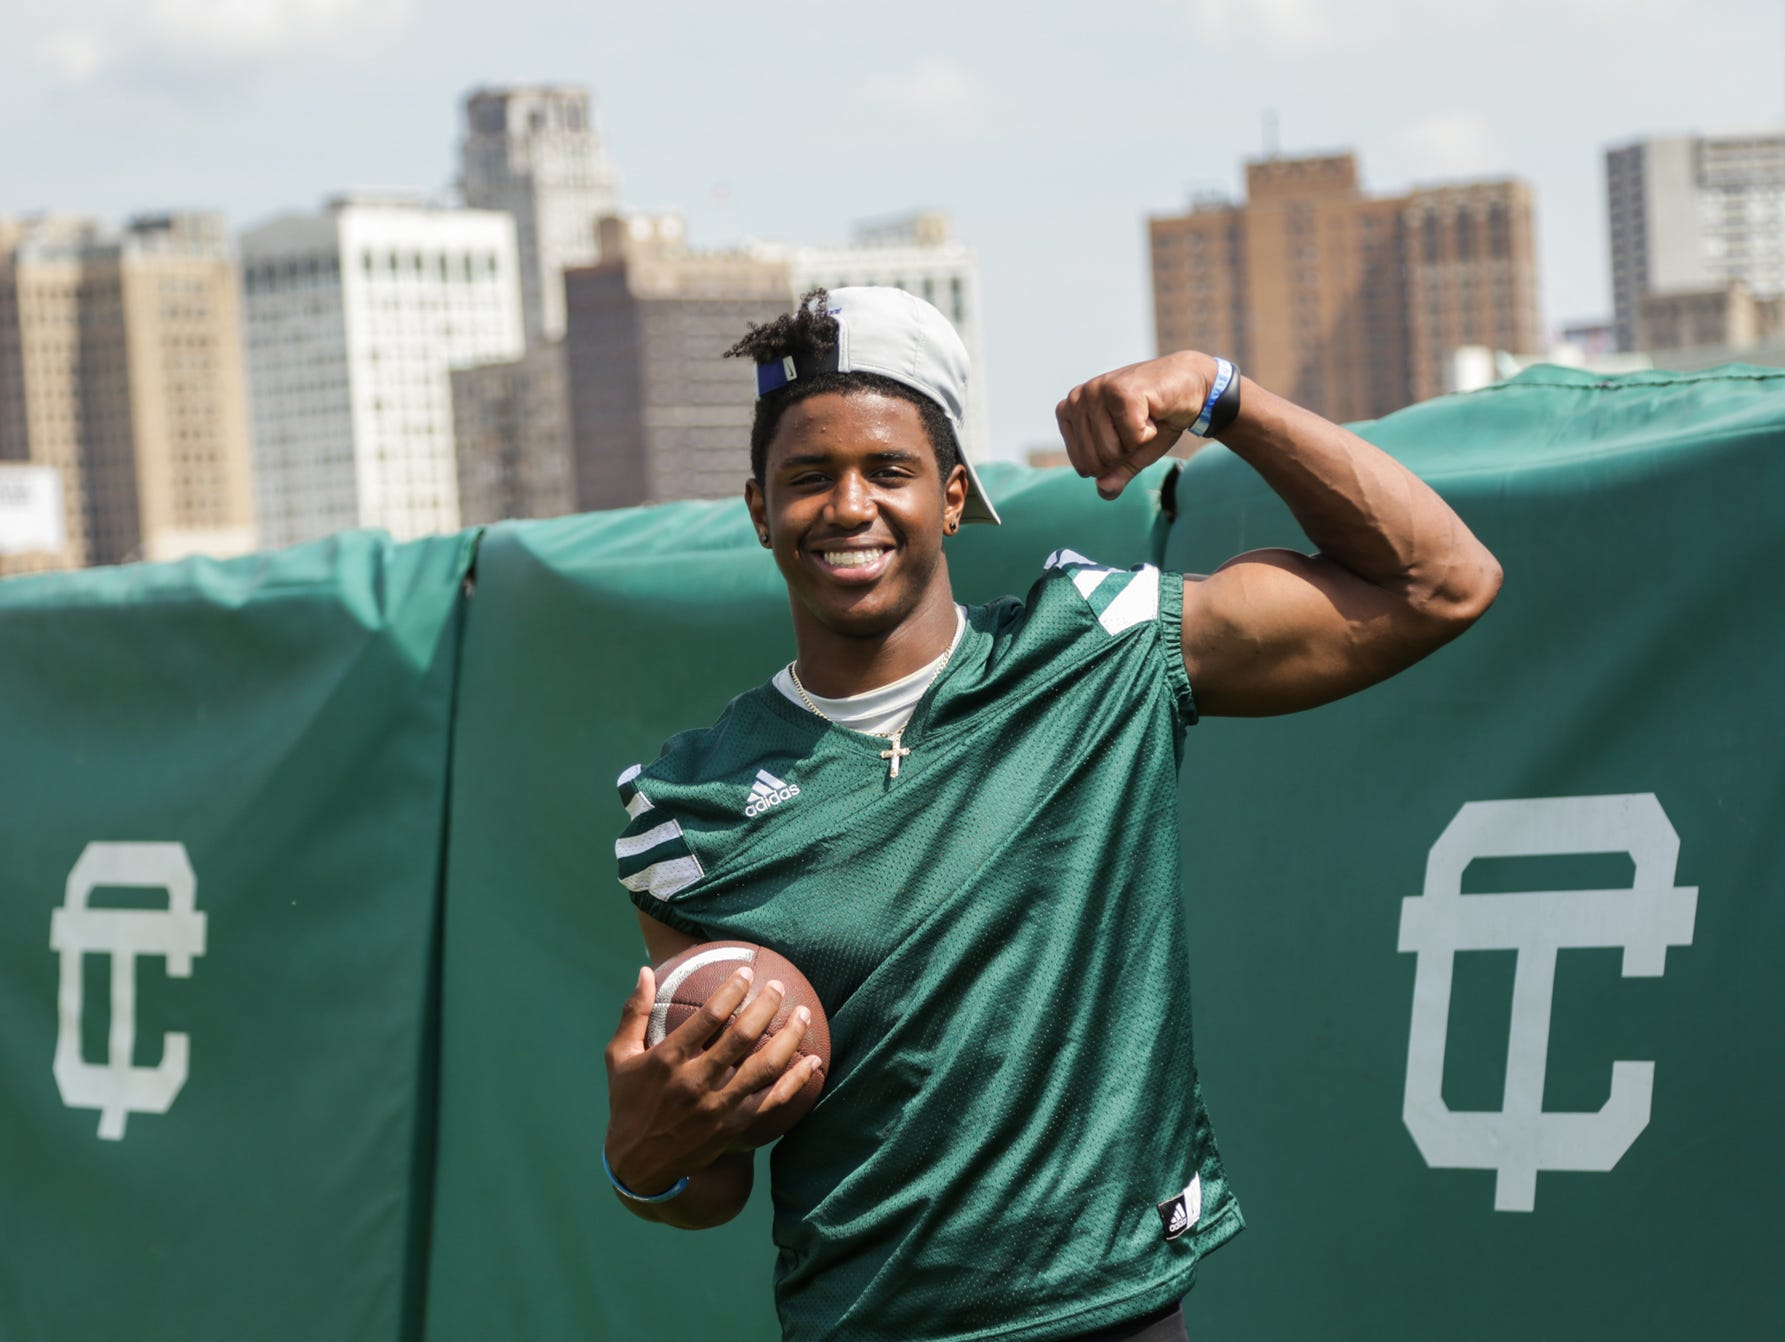 Detroit Cass Tech's Donovan Peoples-Jones poses for a photo during practice on Aug. 17 at Cass Tech.